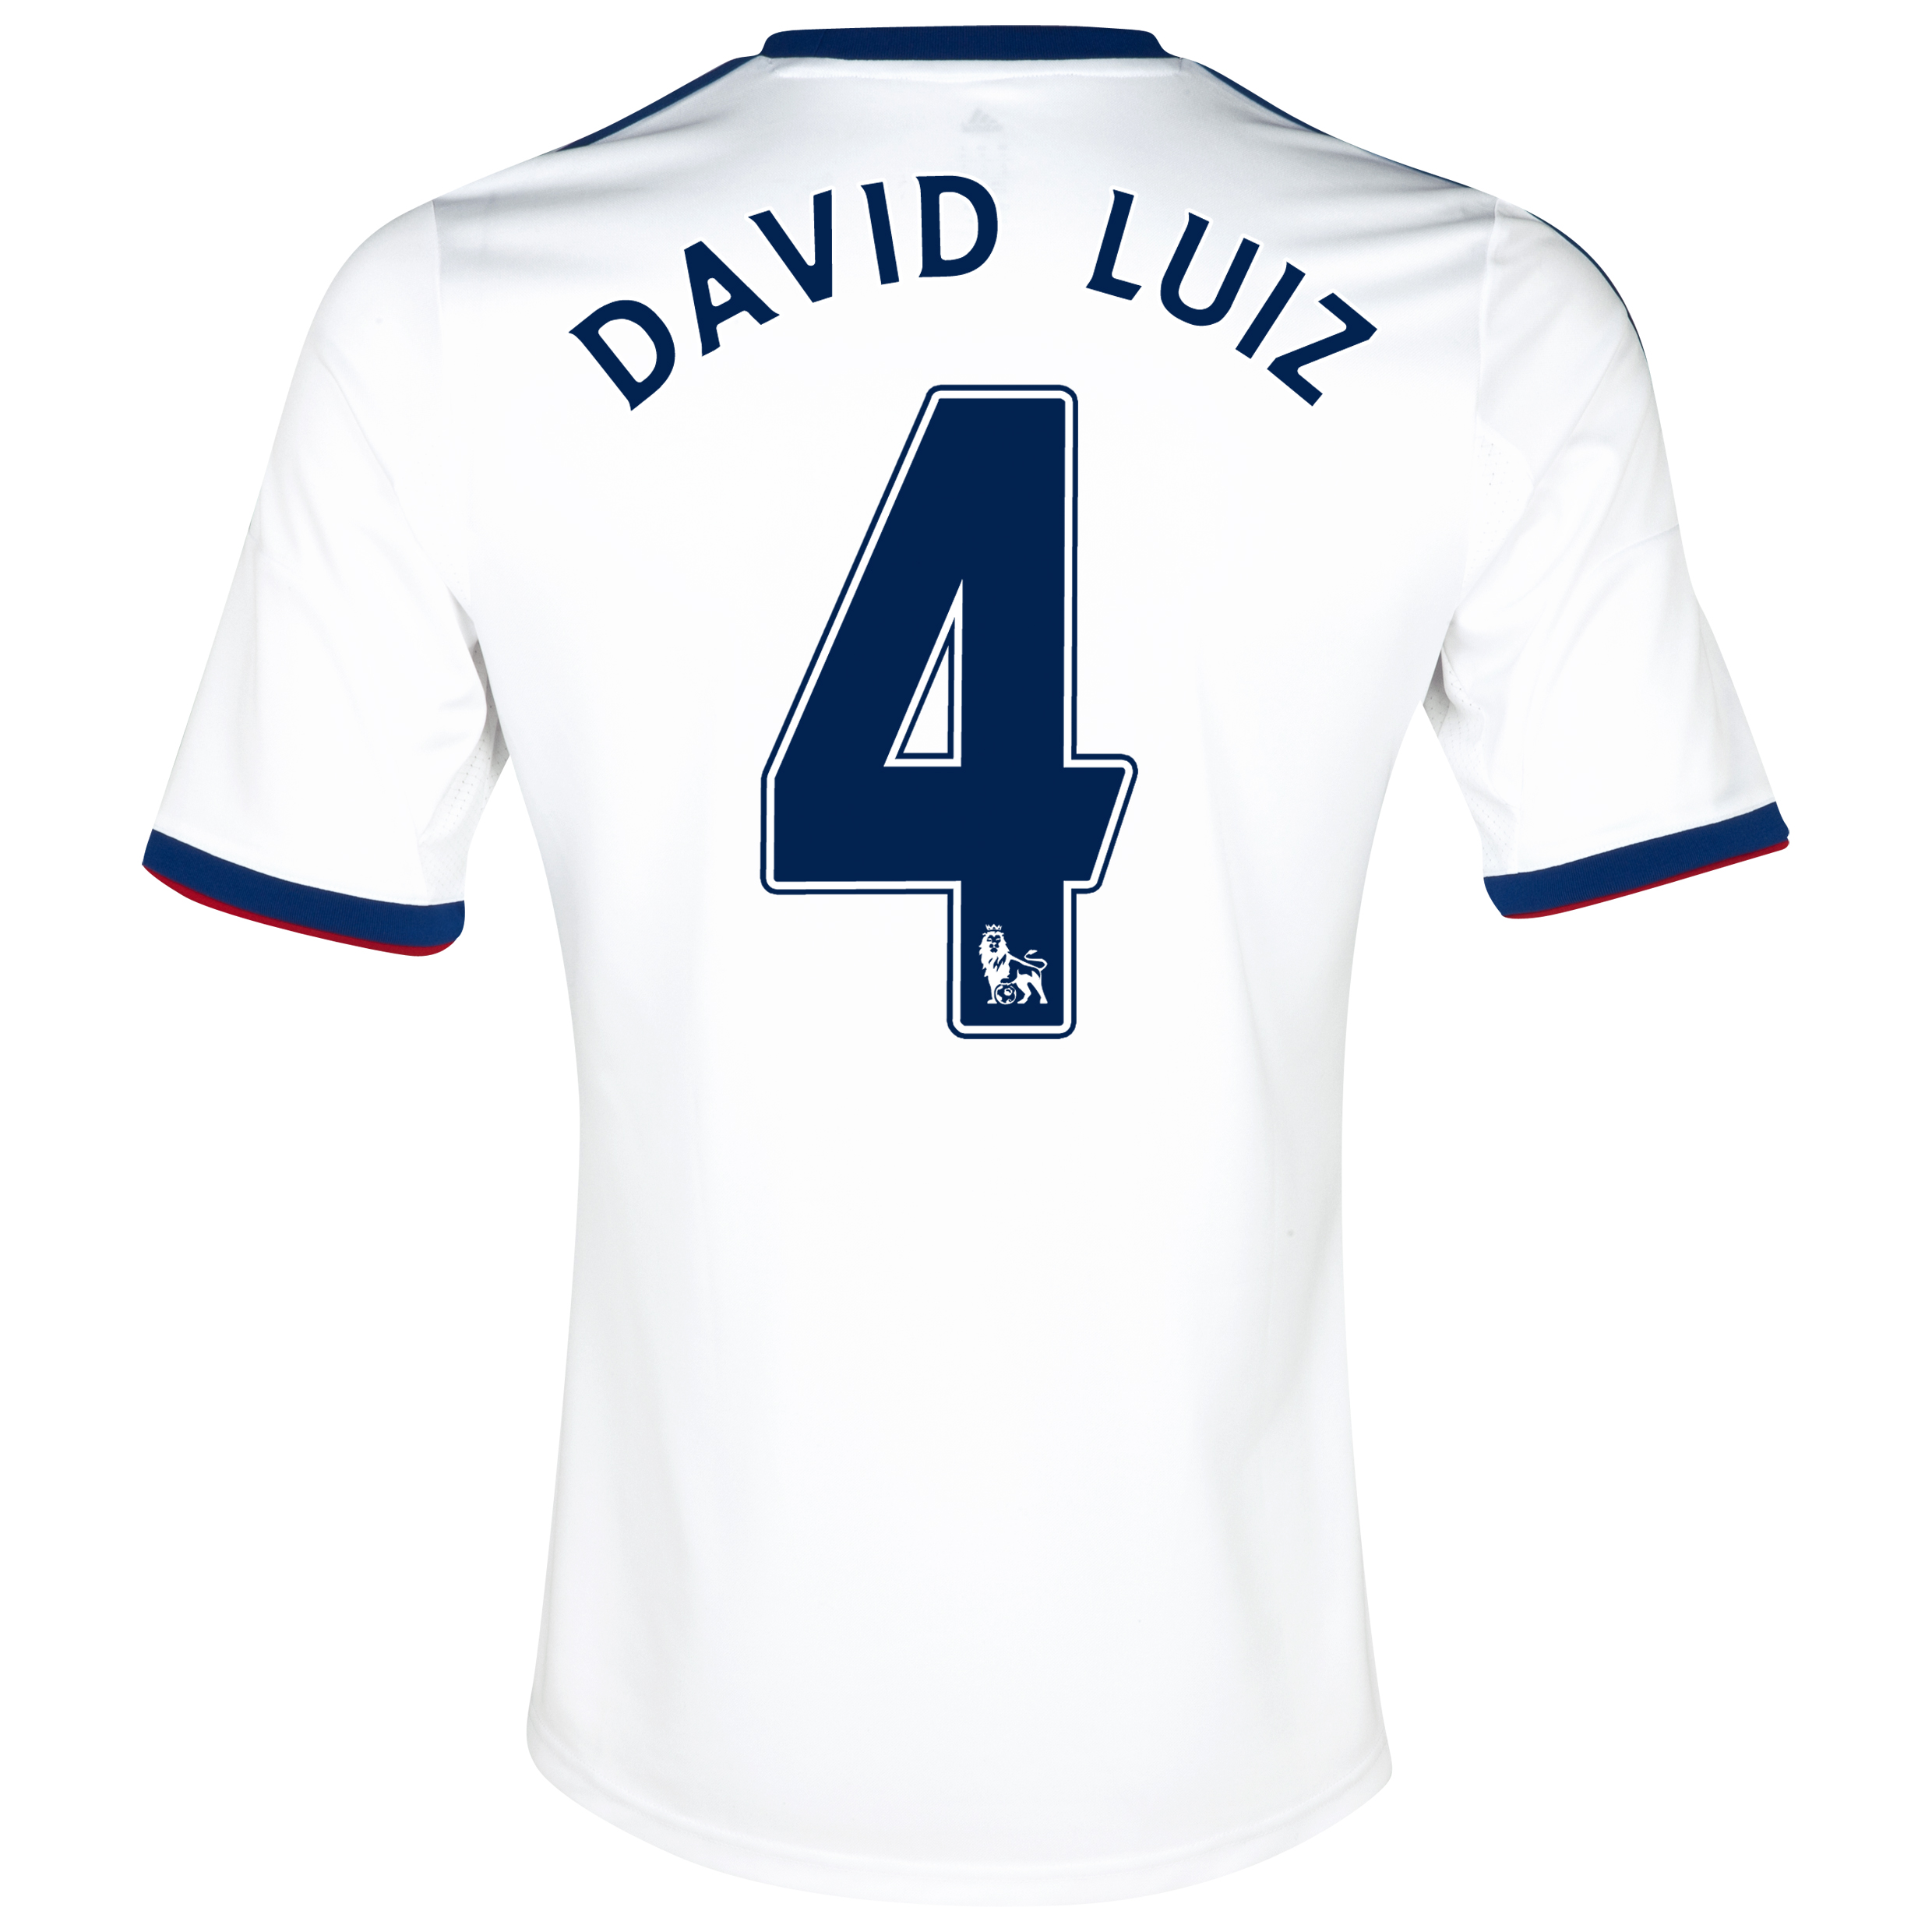 Chelsea Away Shirt 2013/14 with David Luiz 4 printing